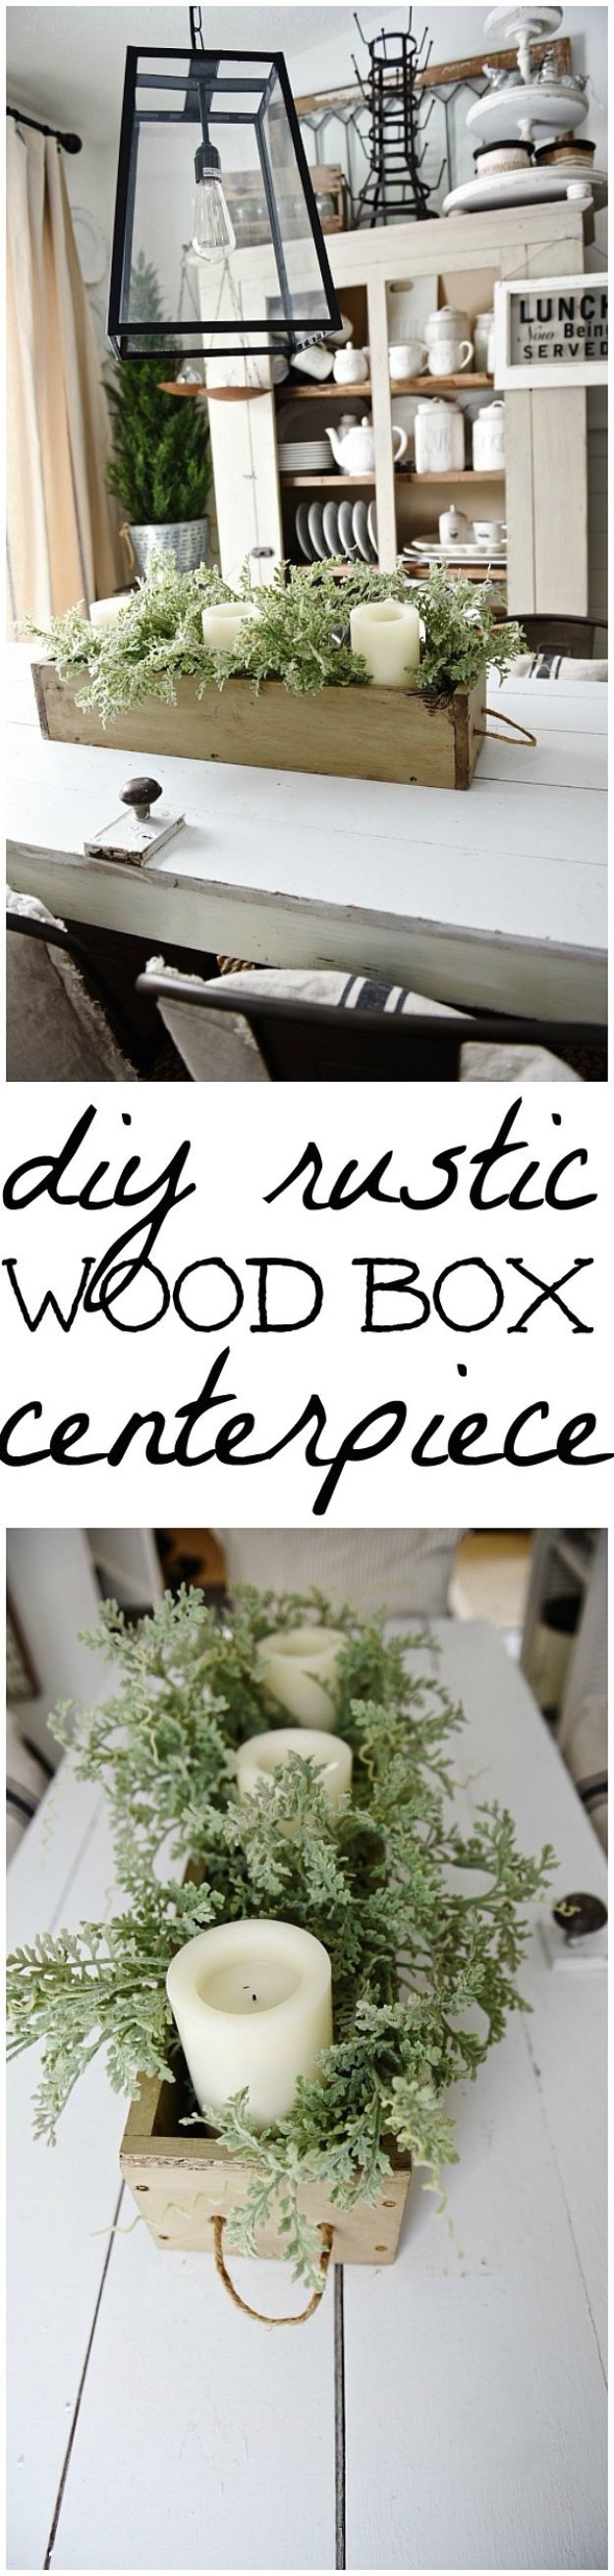 DIY Modern Home Decor - DIY Woodbox Centerpiece - Room Ideas, Wall Art on A Budget, Farmhouse Style Projects - Easy DIY Ideas and Decorations for Apartments, Living Room, Bedroom, Kitchen and Bath - Fixer Upper Tips and Tricks